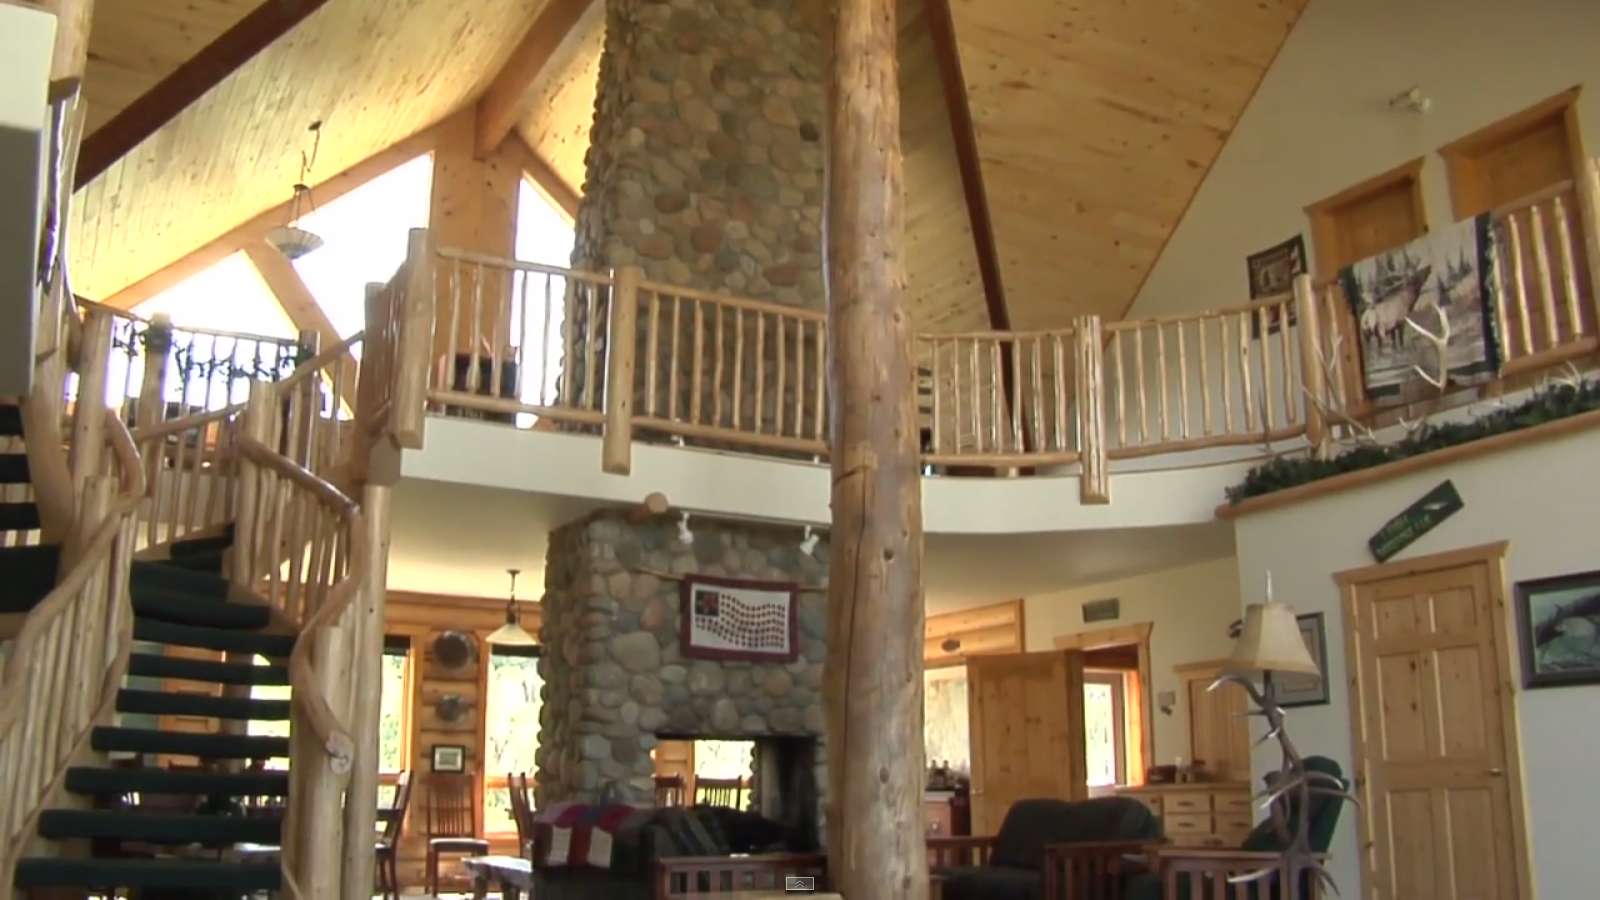 liars' lodge bed and breakfast in buena vista, colorado | sweet